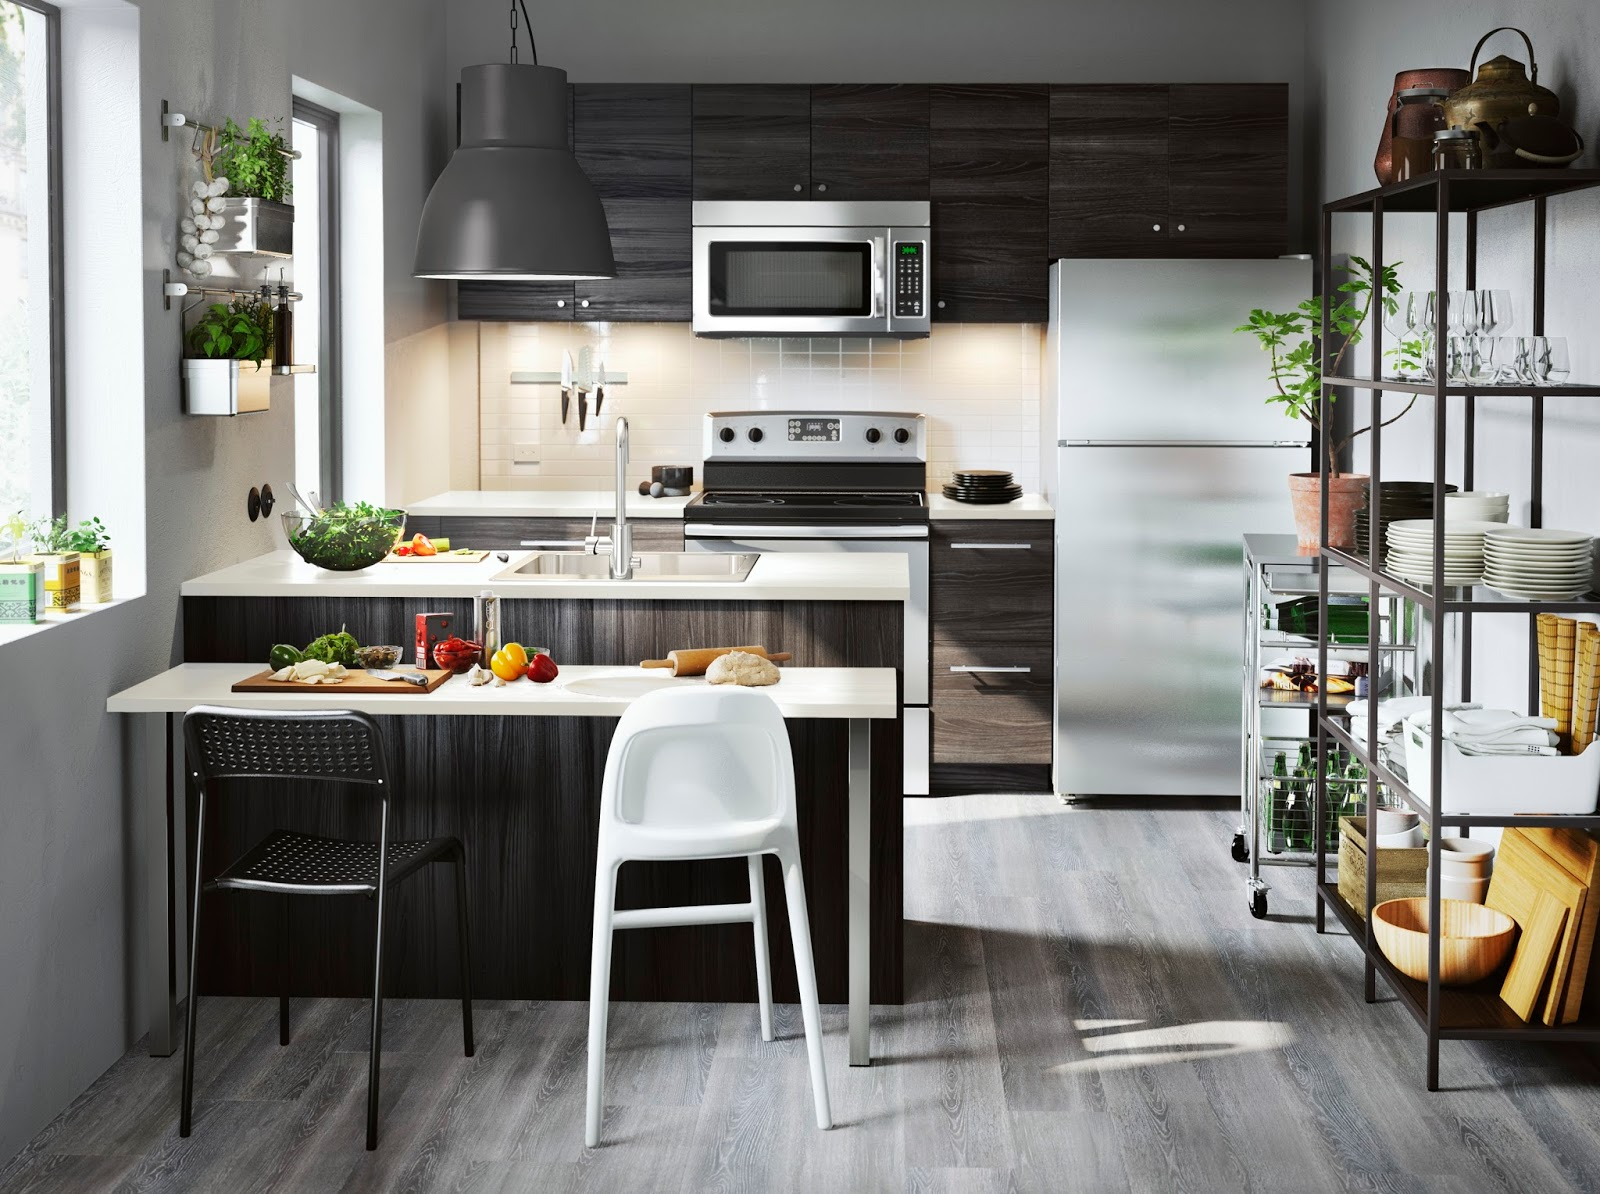 From Nature To Home : Thinking About An IKEA Kitchen? Ikea